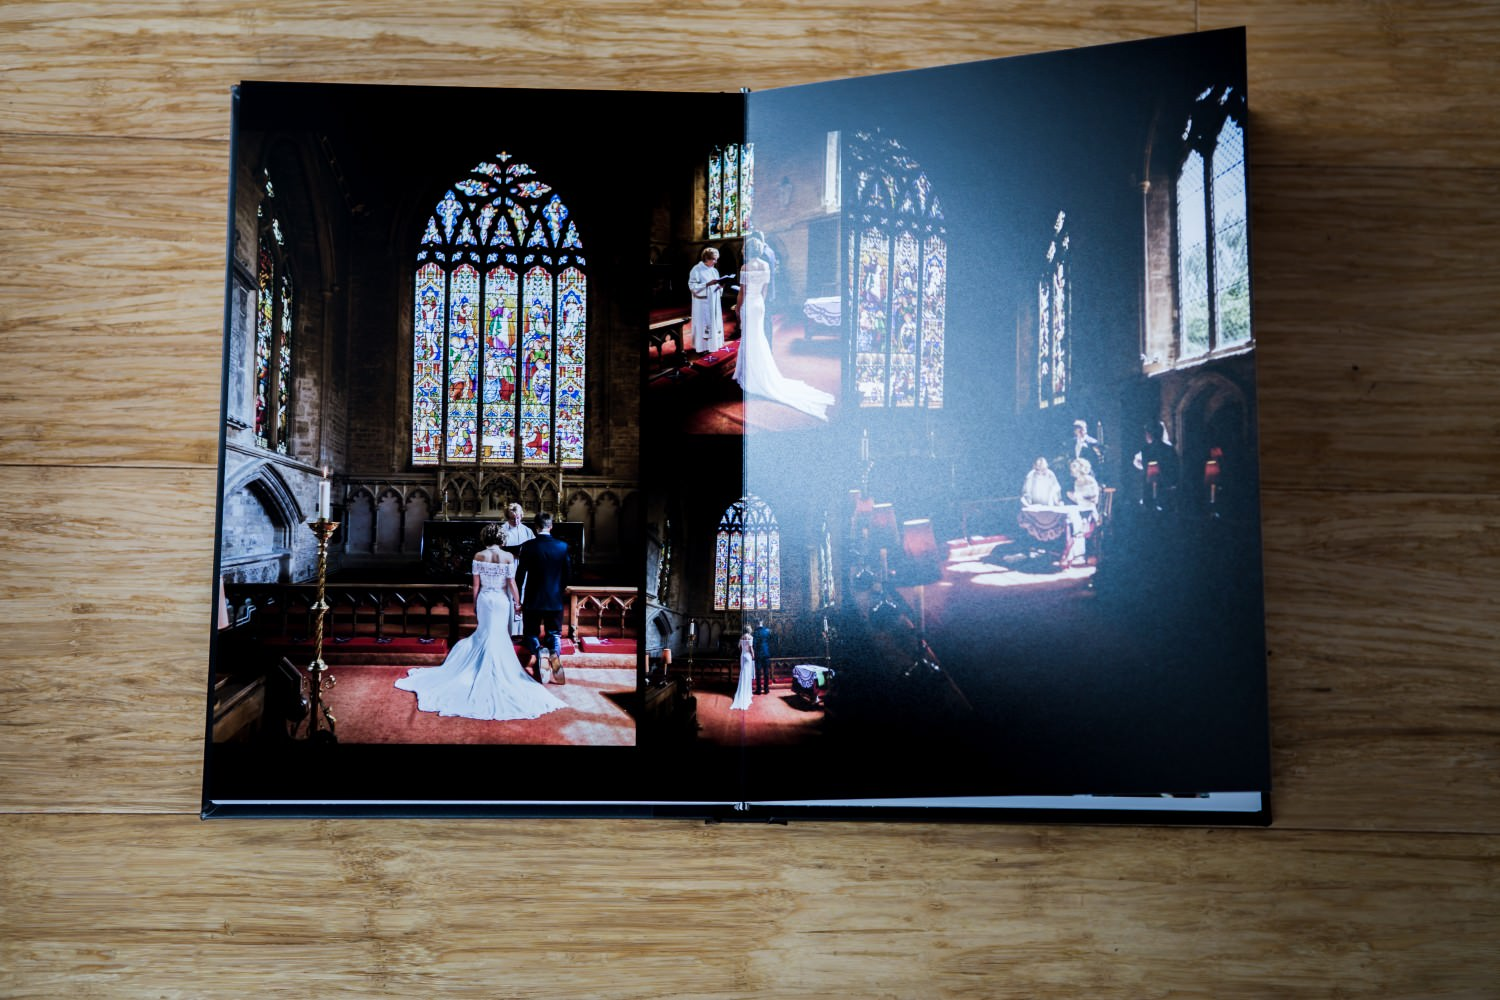 Holney church wedding album